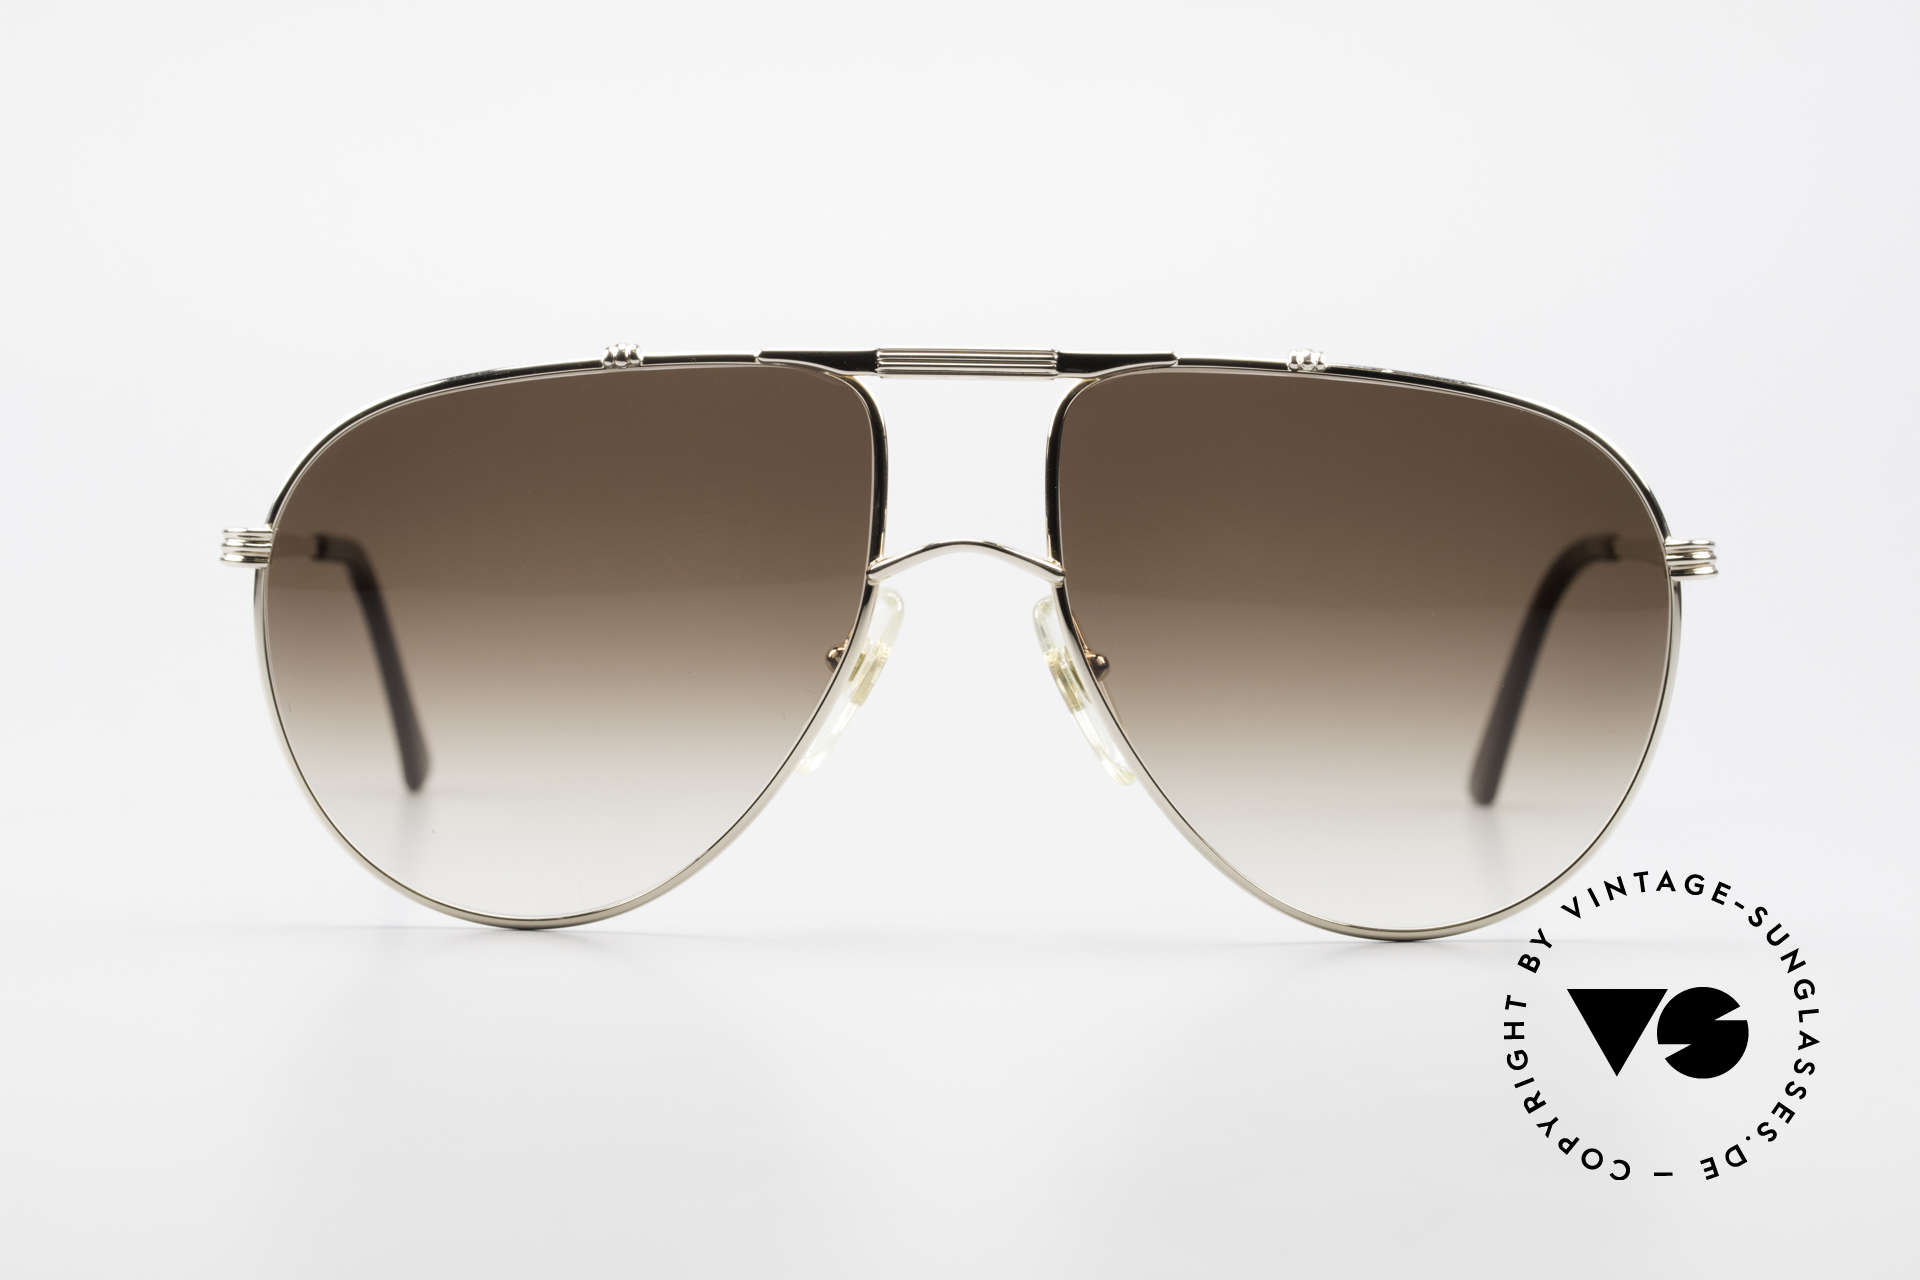 Christian Dior 2248 XL 80's Monsieur Sunglasses, rare designer sunglasses from 1984; truly 80's vintage!, Made for Men